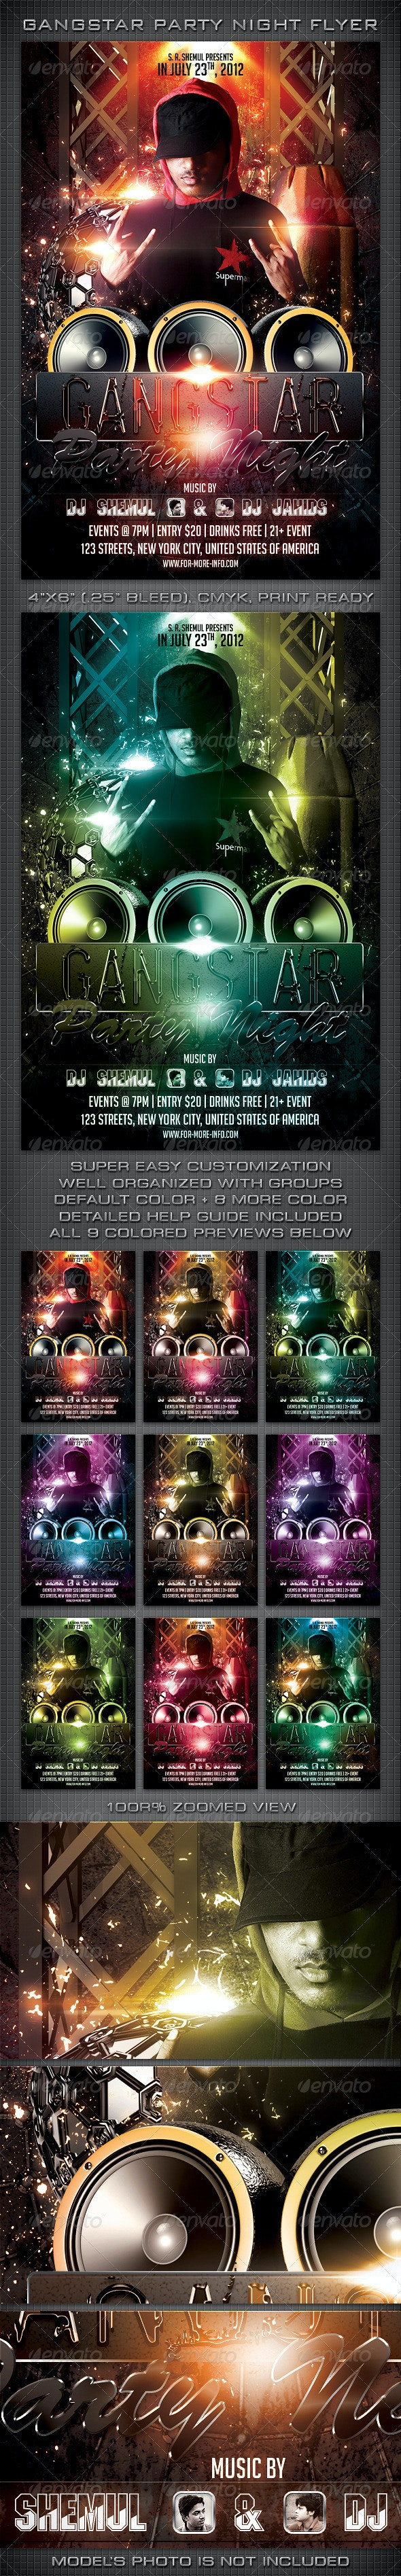 Gangstar Party Flyer - Clubs & Parties Events